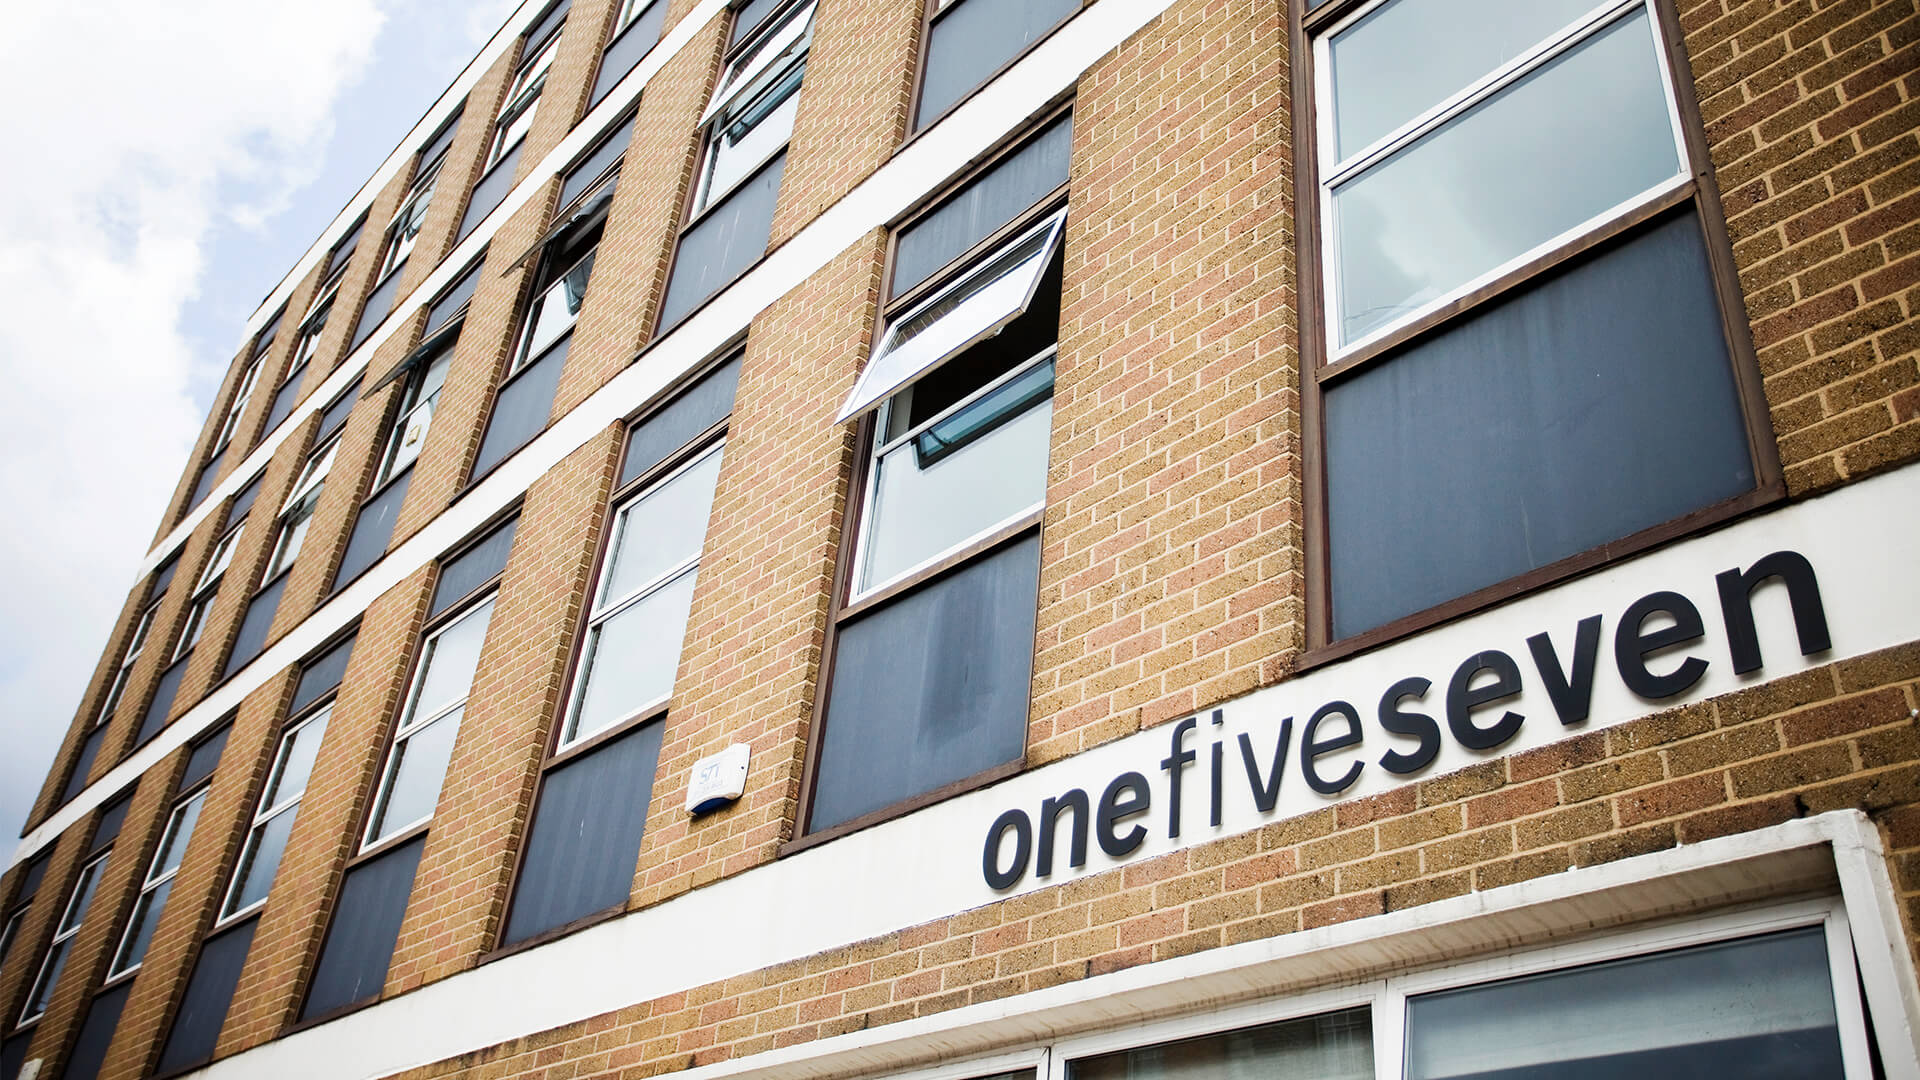 http://OneFiveSeven%20Building%20Exterior%20Frontage